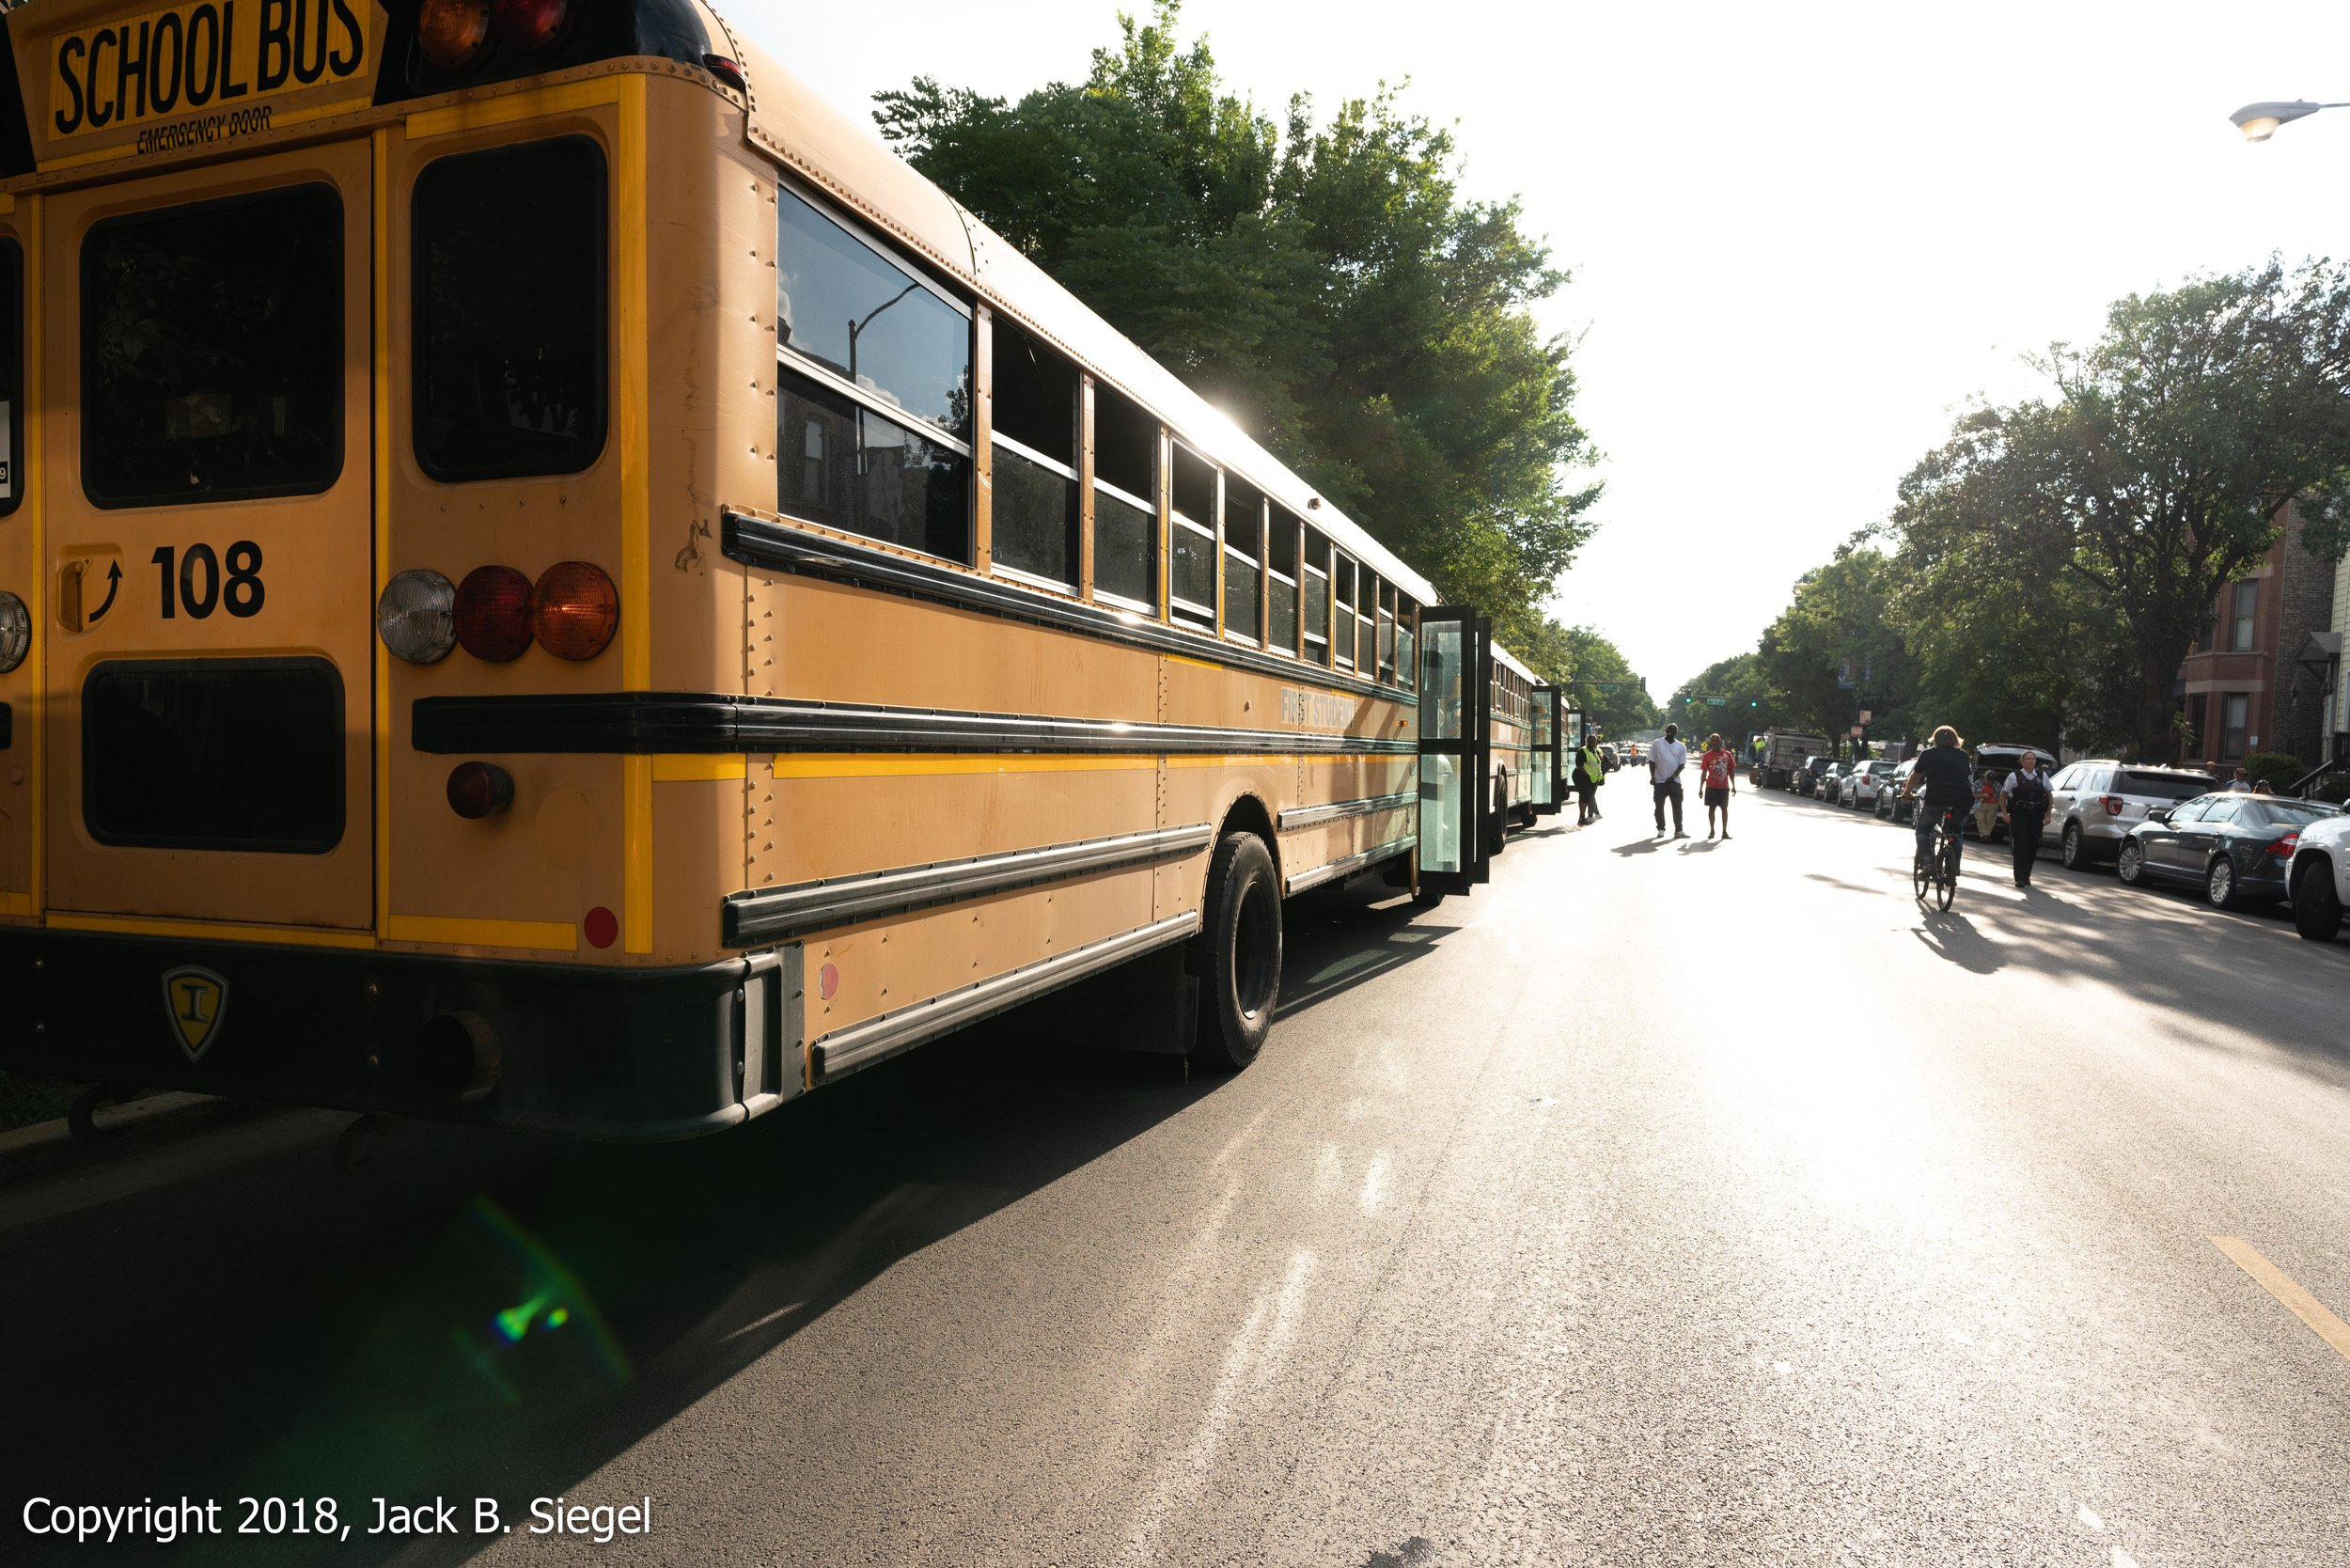 _DS10456_Copyright 2018 jpeg_The School Buses Waiting to Transport the Demonstrators Back to the Southside.jpg